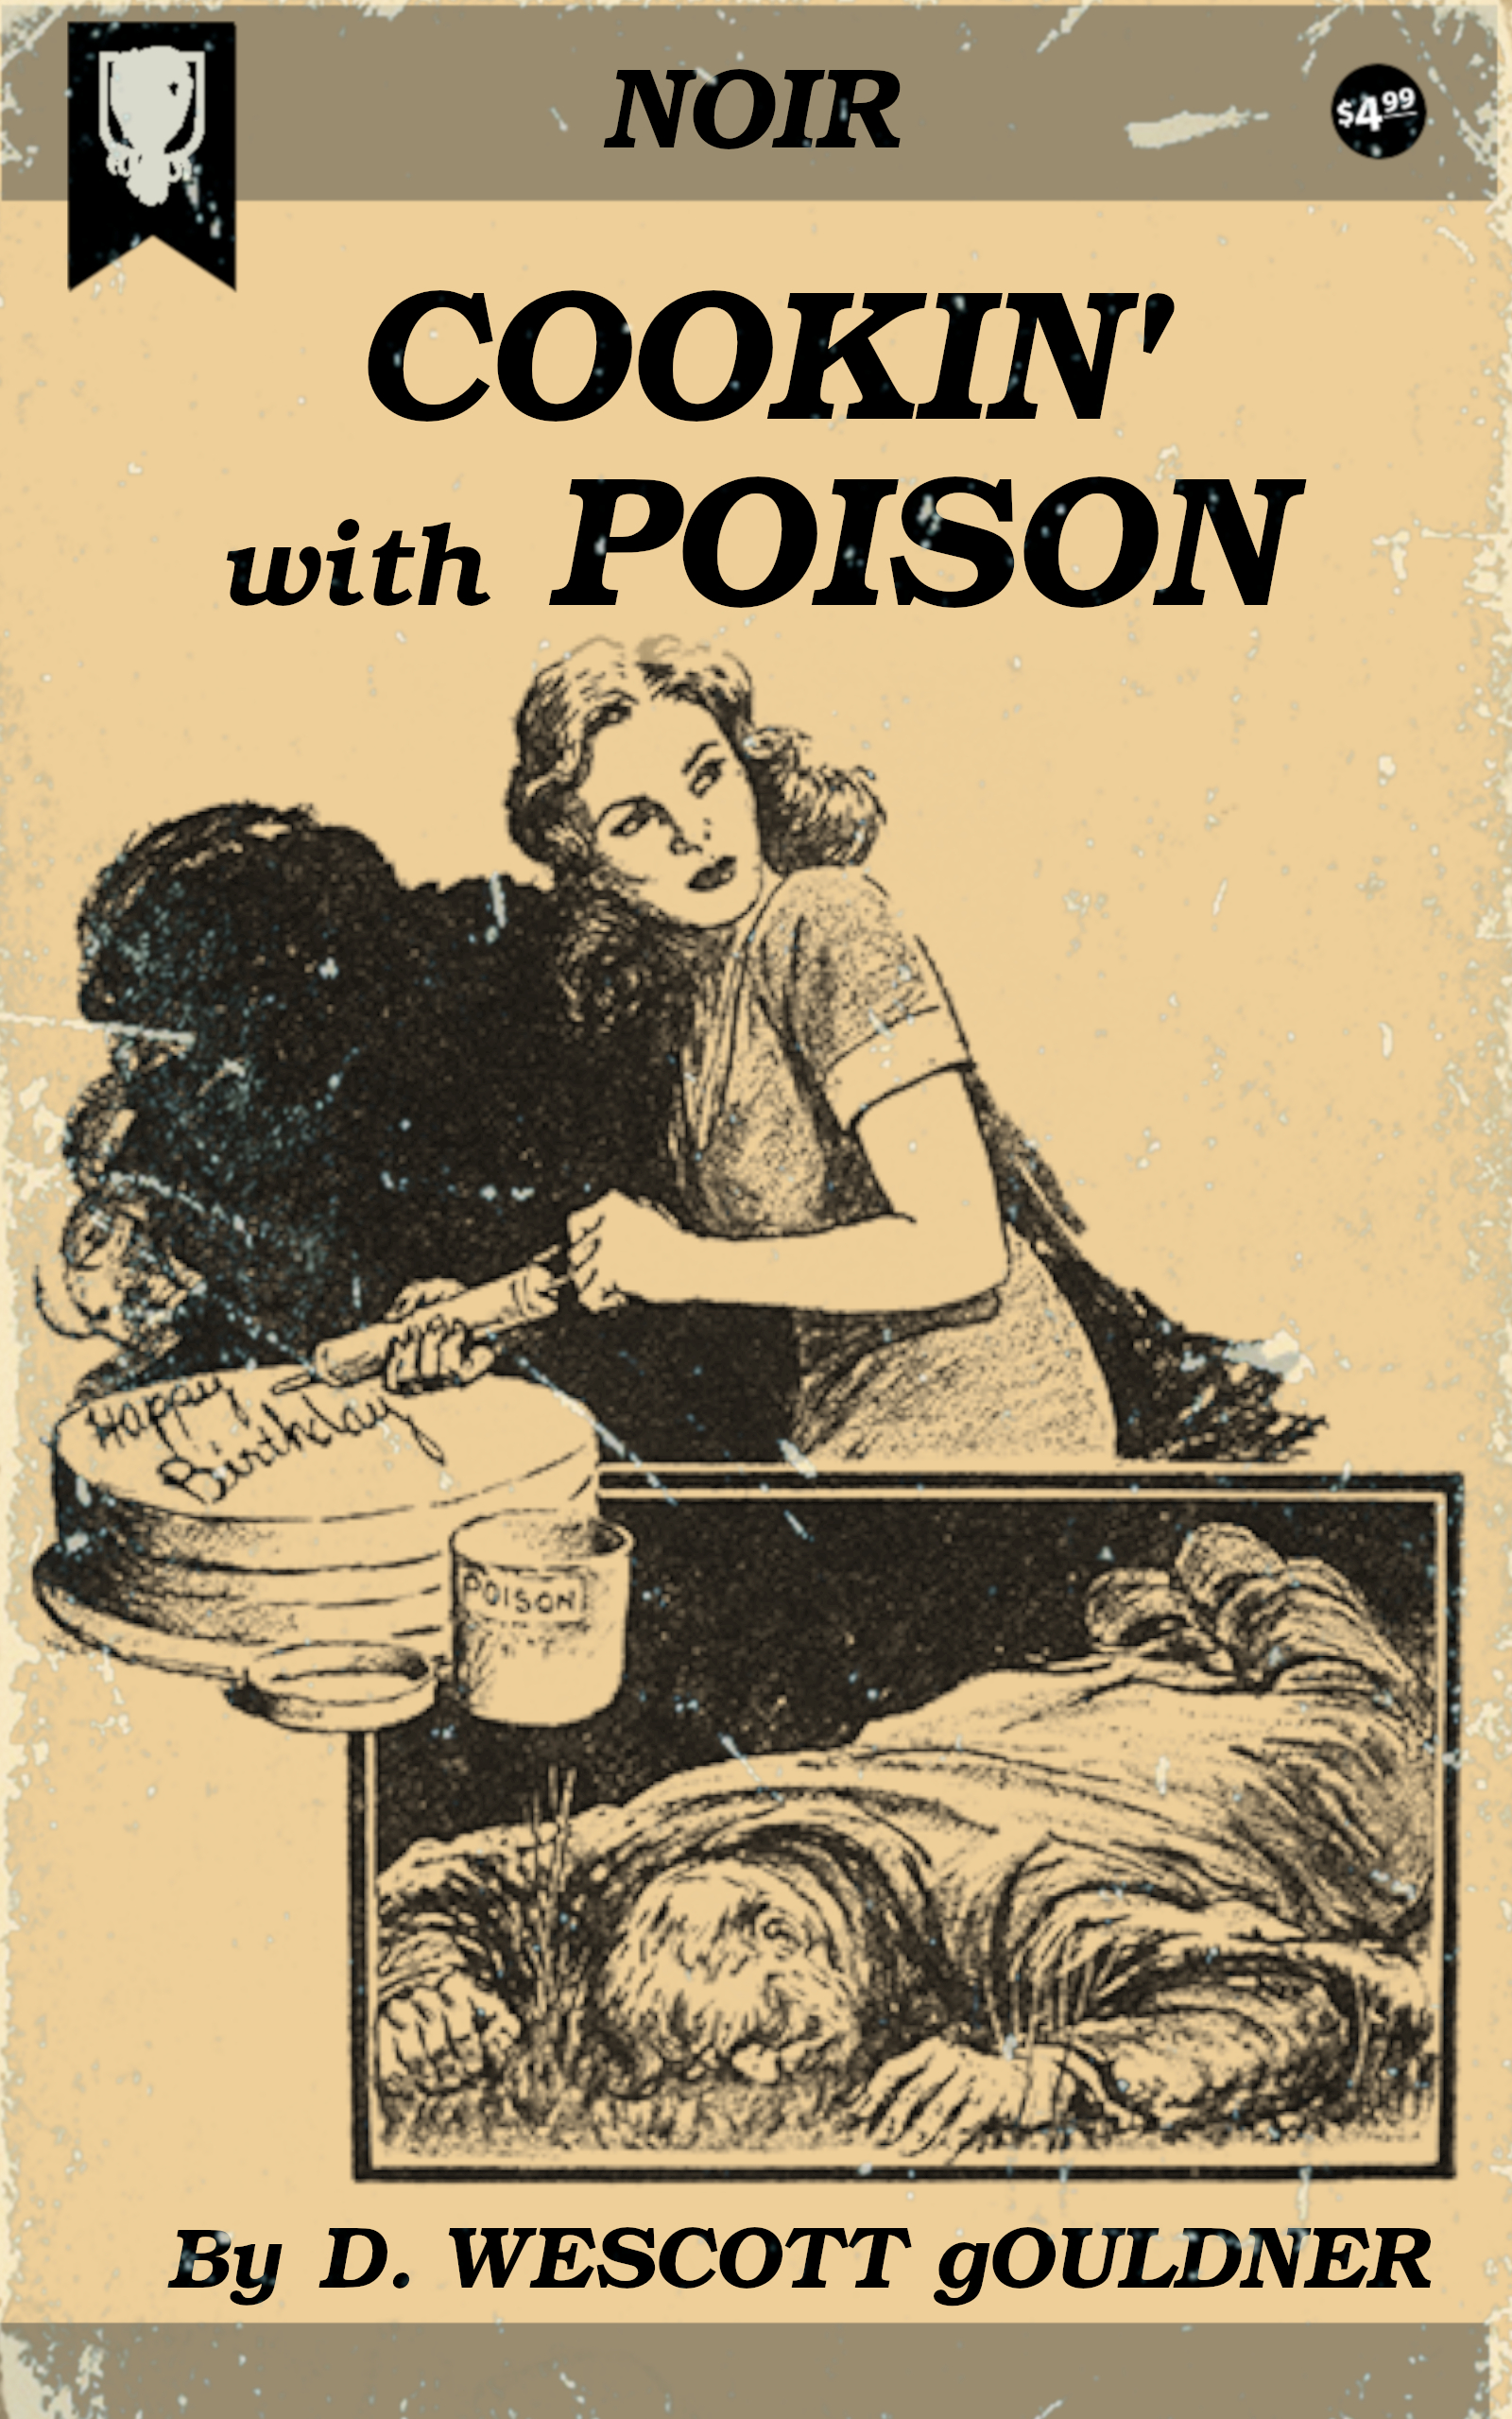 Cookin' With Poison by D. Wescott Gouldner